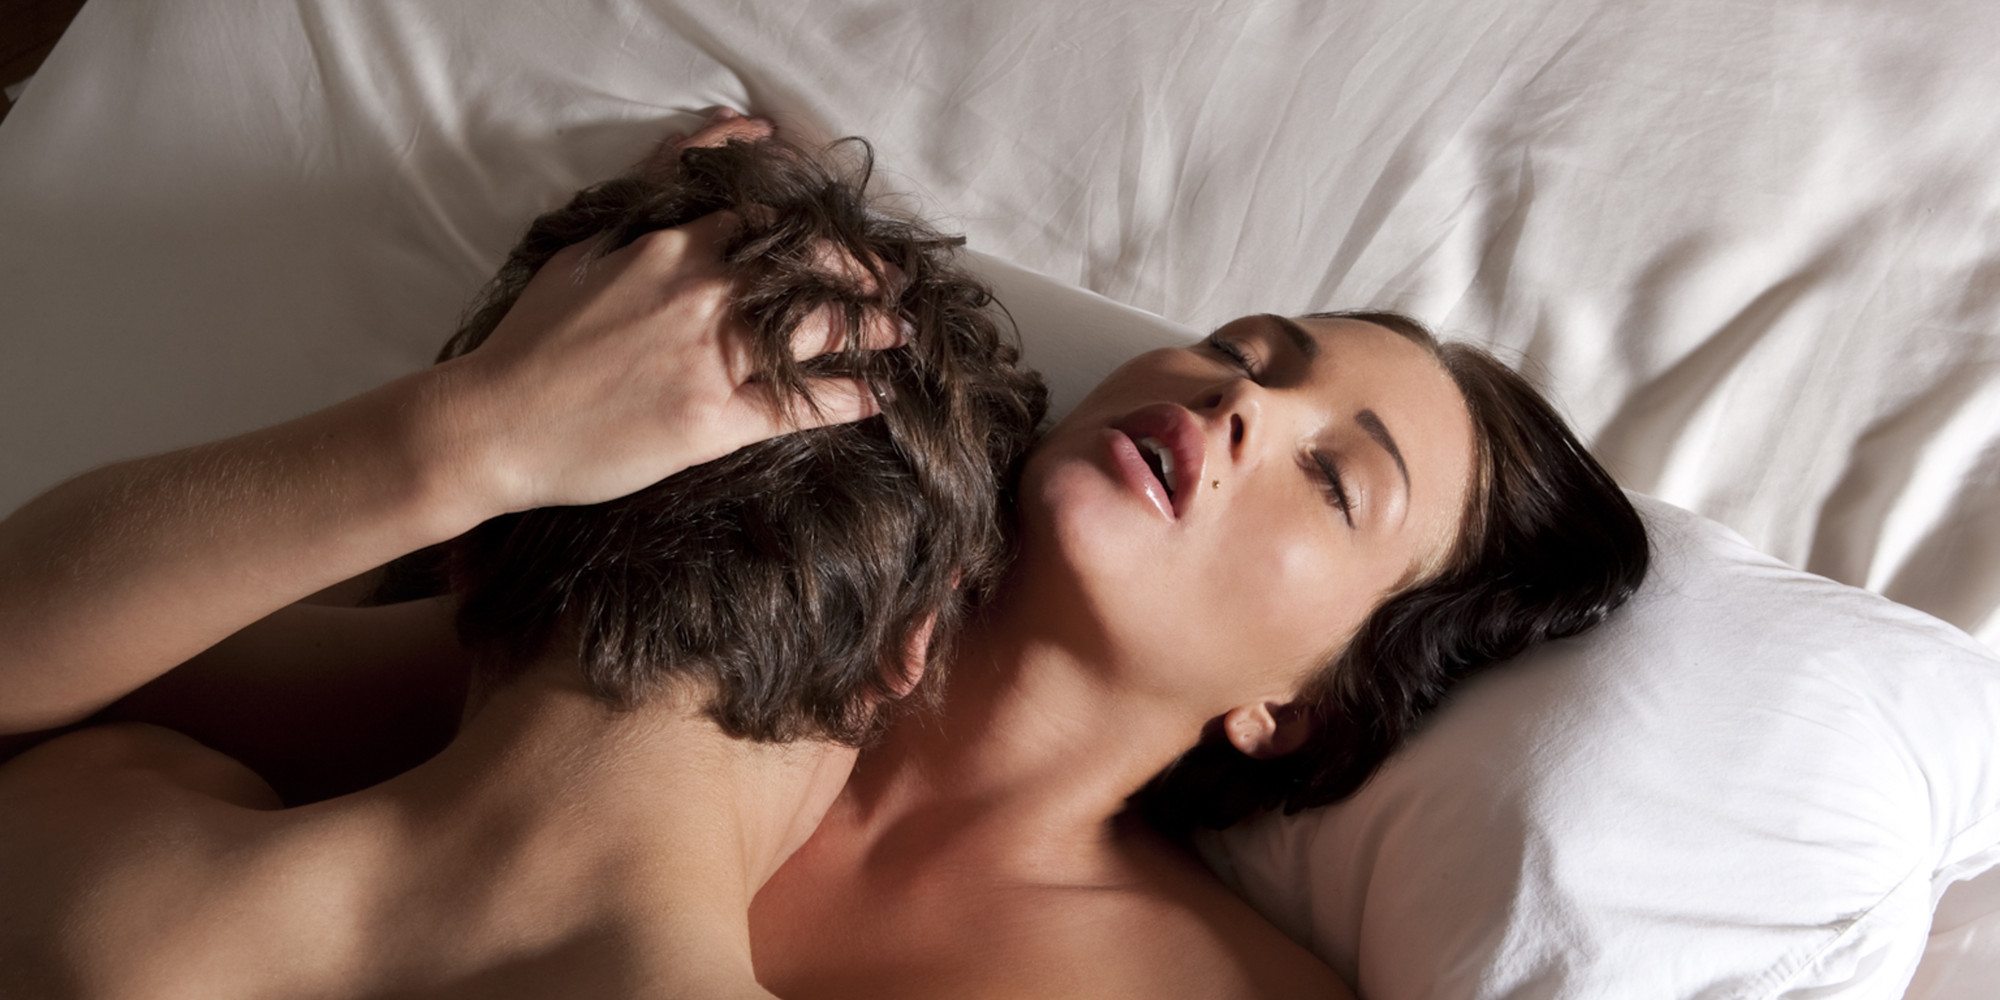 birth s and marriages sex apps like tinder Queensland